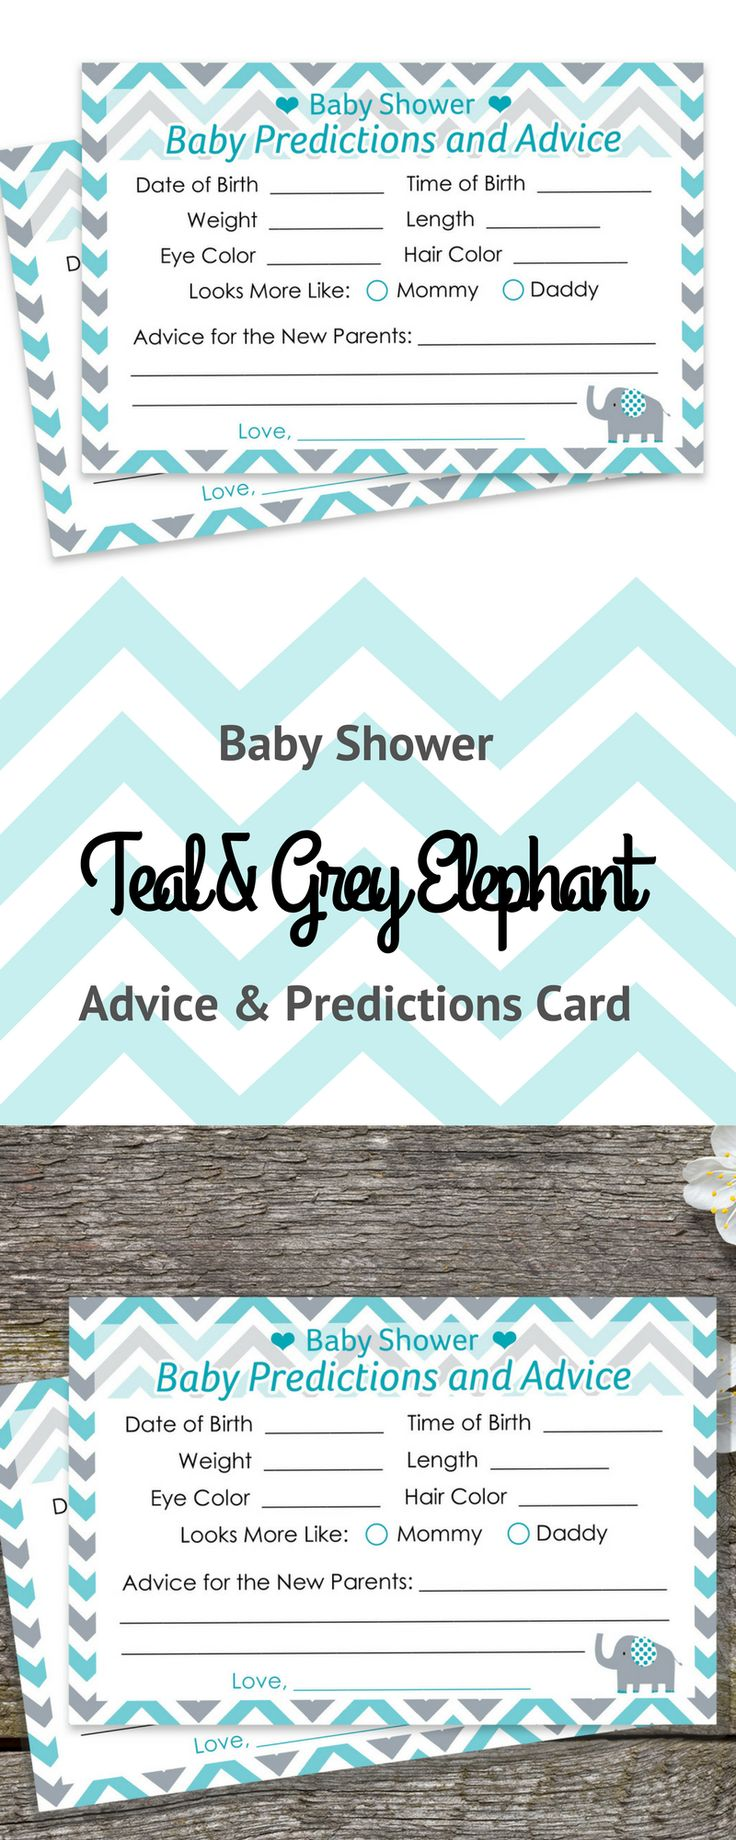 Baby Shower Advice and Predictions Cards - for Up to 20 Guests.Teal Blue and Gray Elephant Theme is Perfect for Boy Baby Showers.  #itsaboy #elephantbabyshower #babyshower #boybabyshower